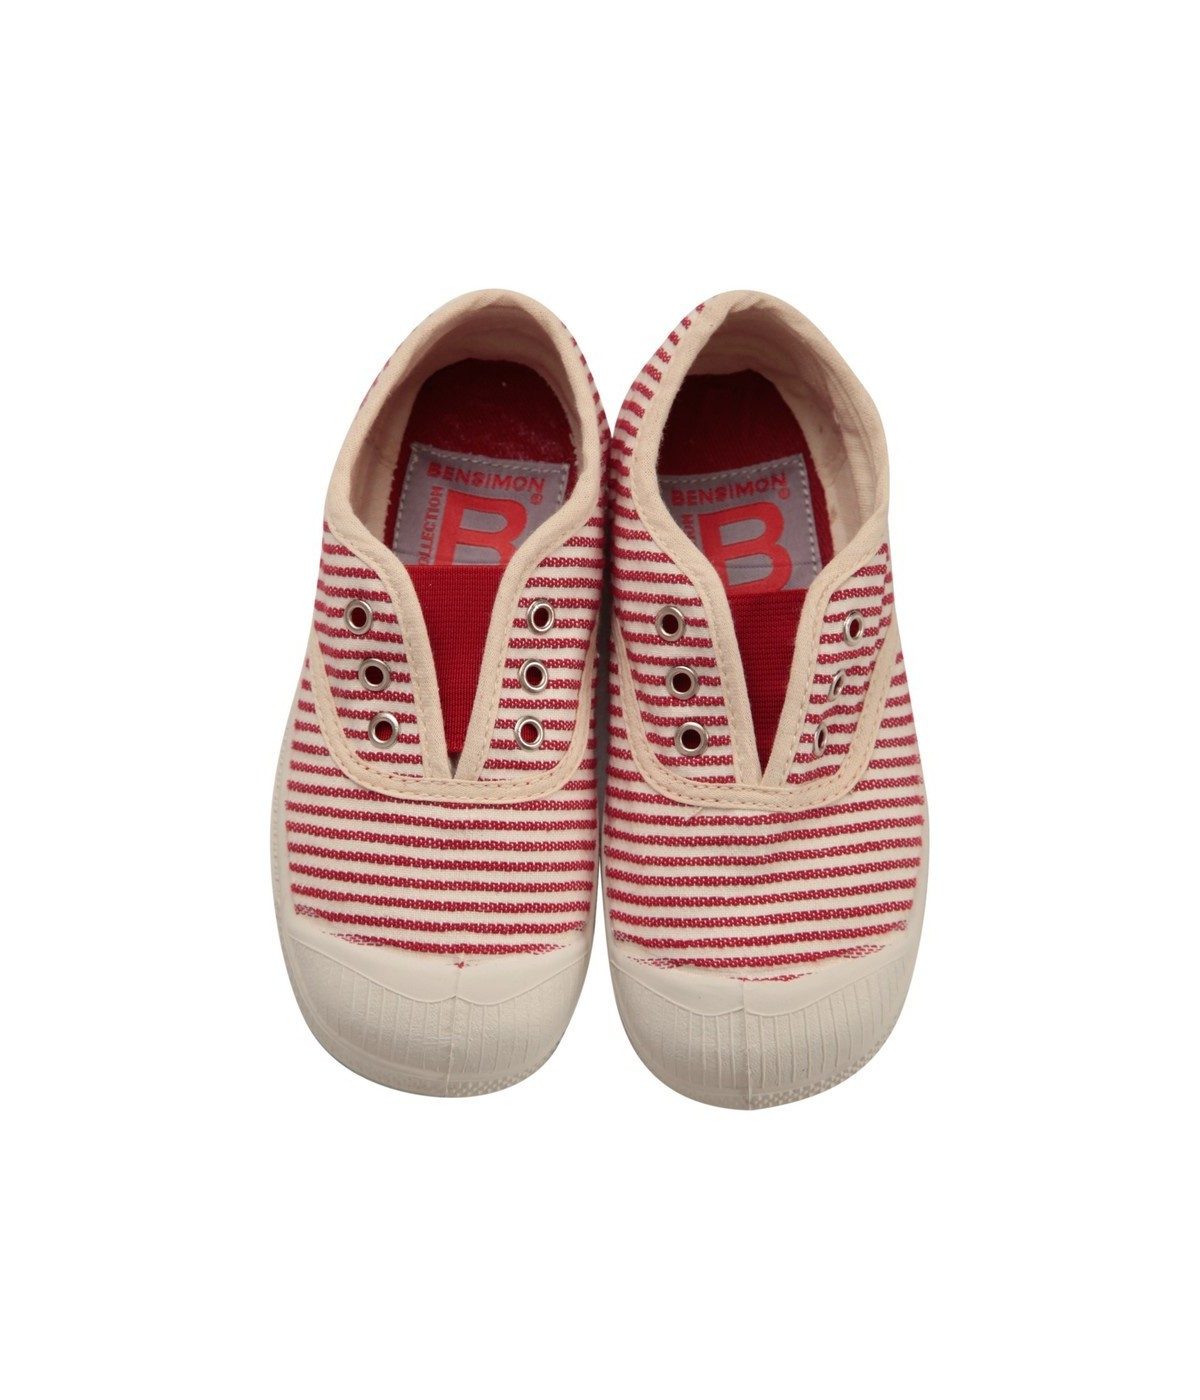 détaillant en ligne bf86b 63184 Basket Enfant Bensimon Tennis Elly Raye Rouge | SHOWROOMVIP : Baskets  basses Fille